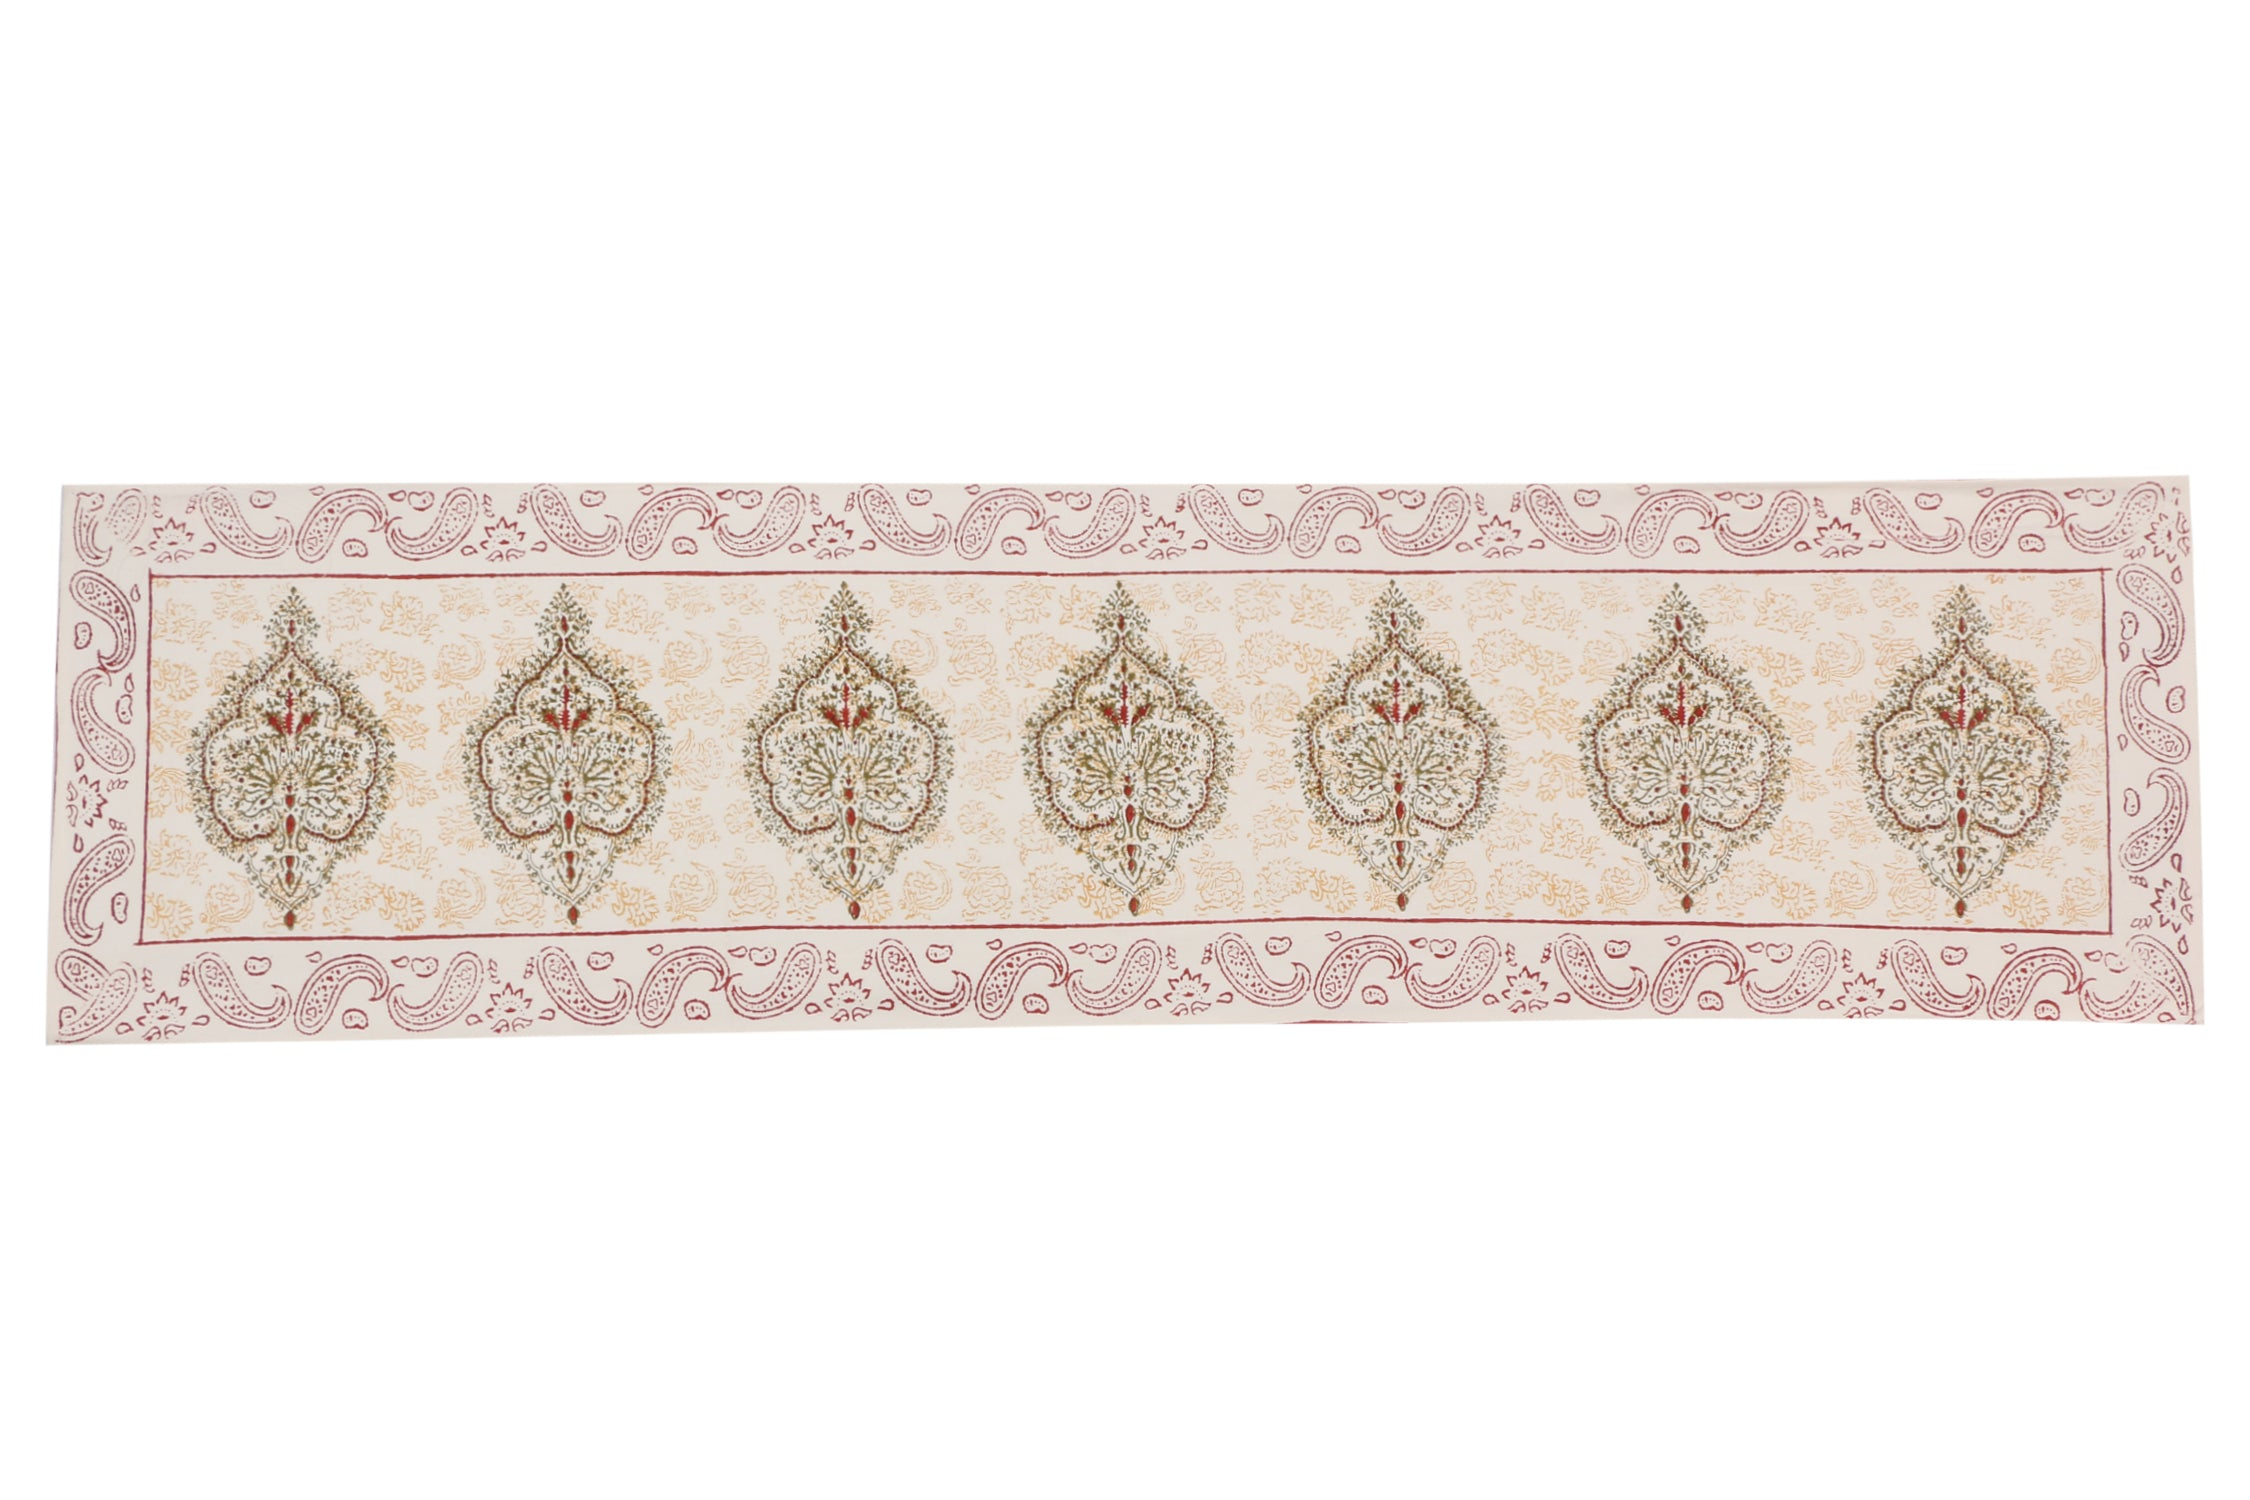 Cotton Floral & Paisley Table Runner - 21